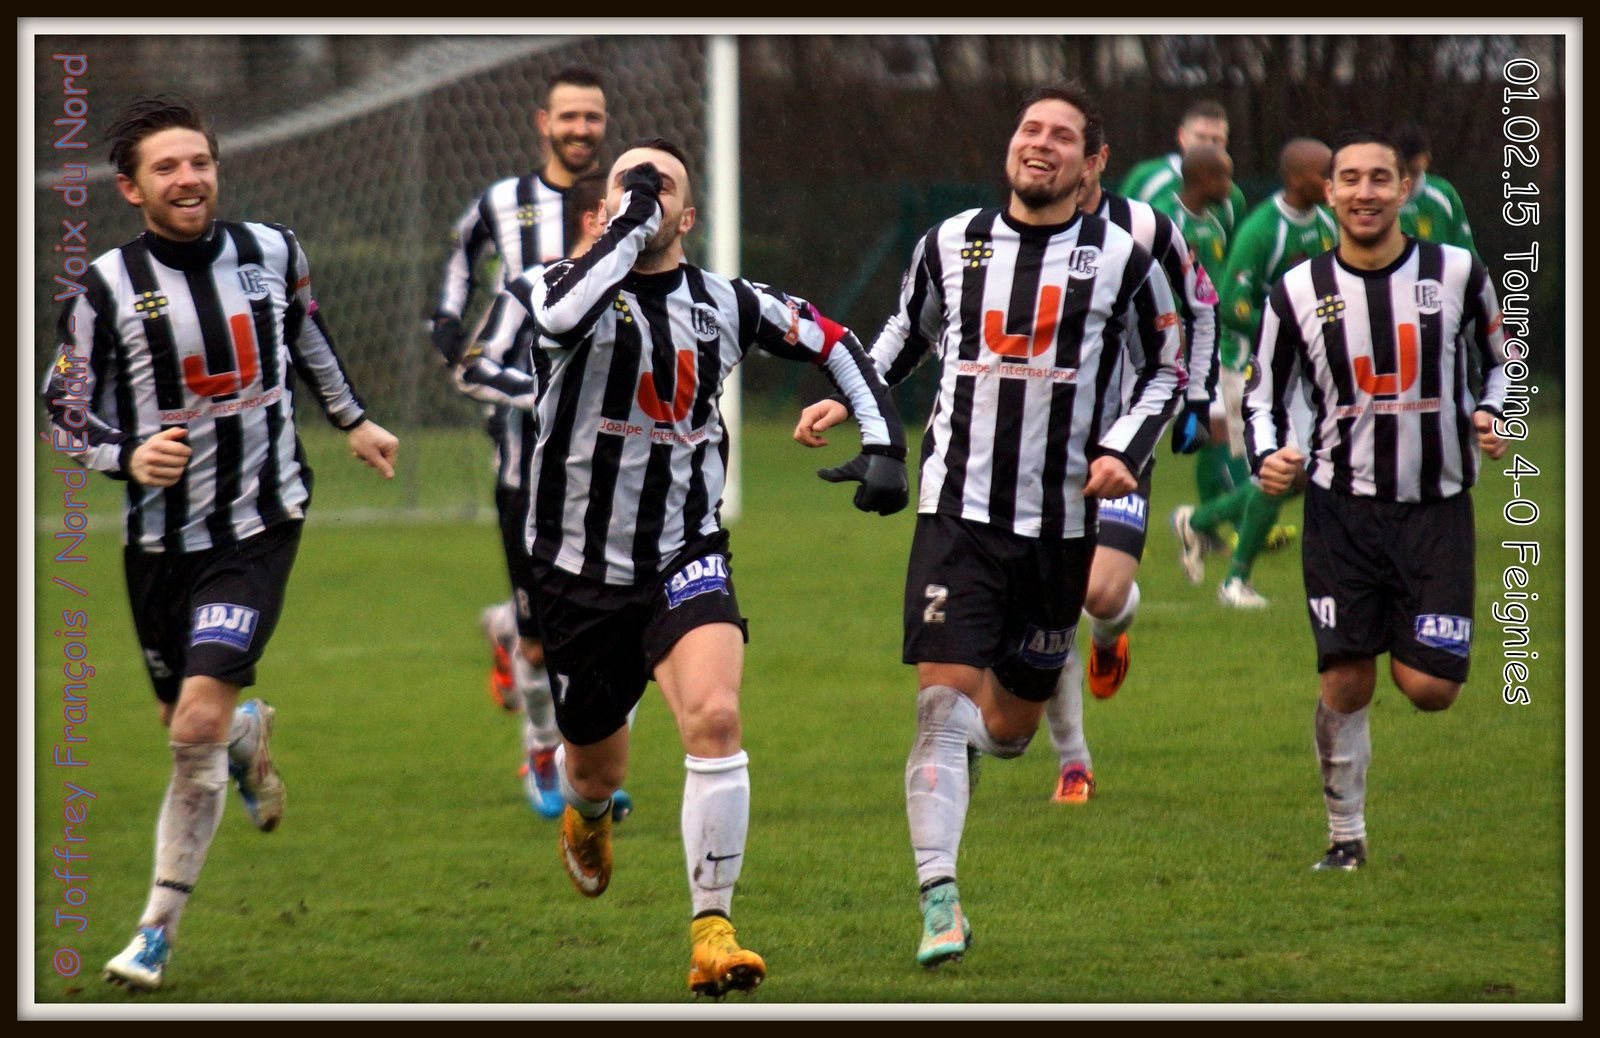 01.02.15 CFA 2 Tourcoing - Feignies